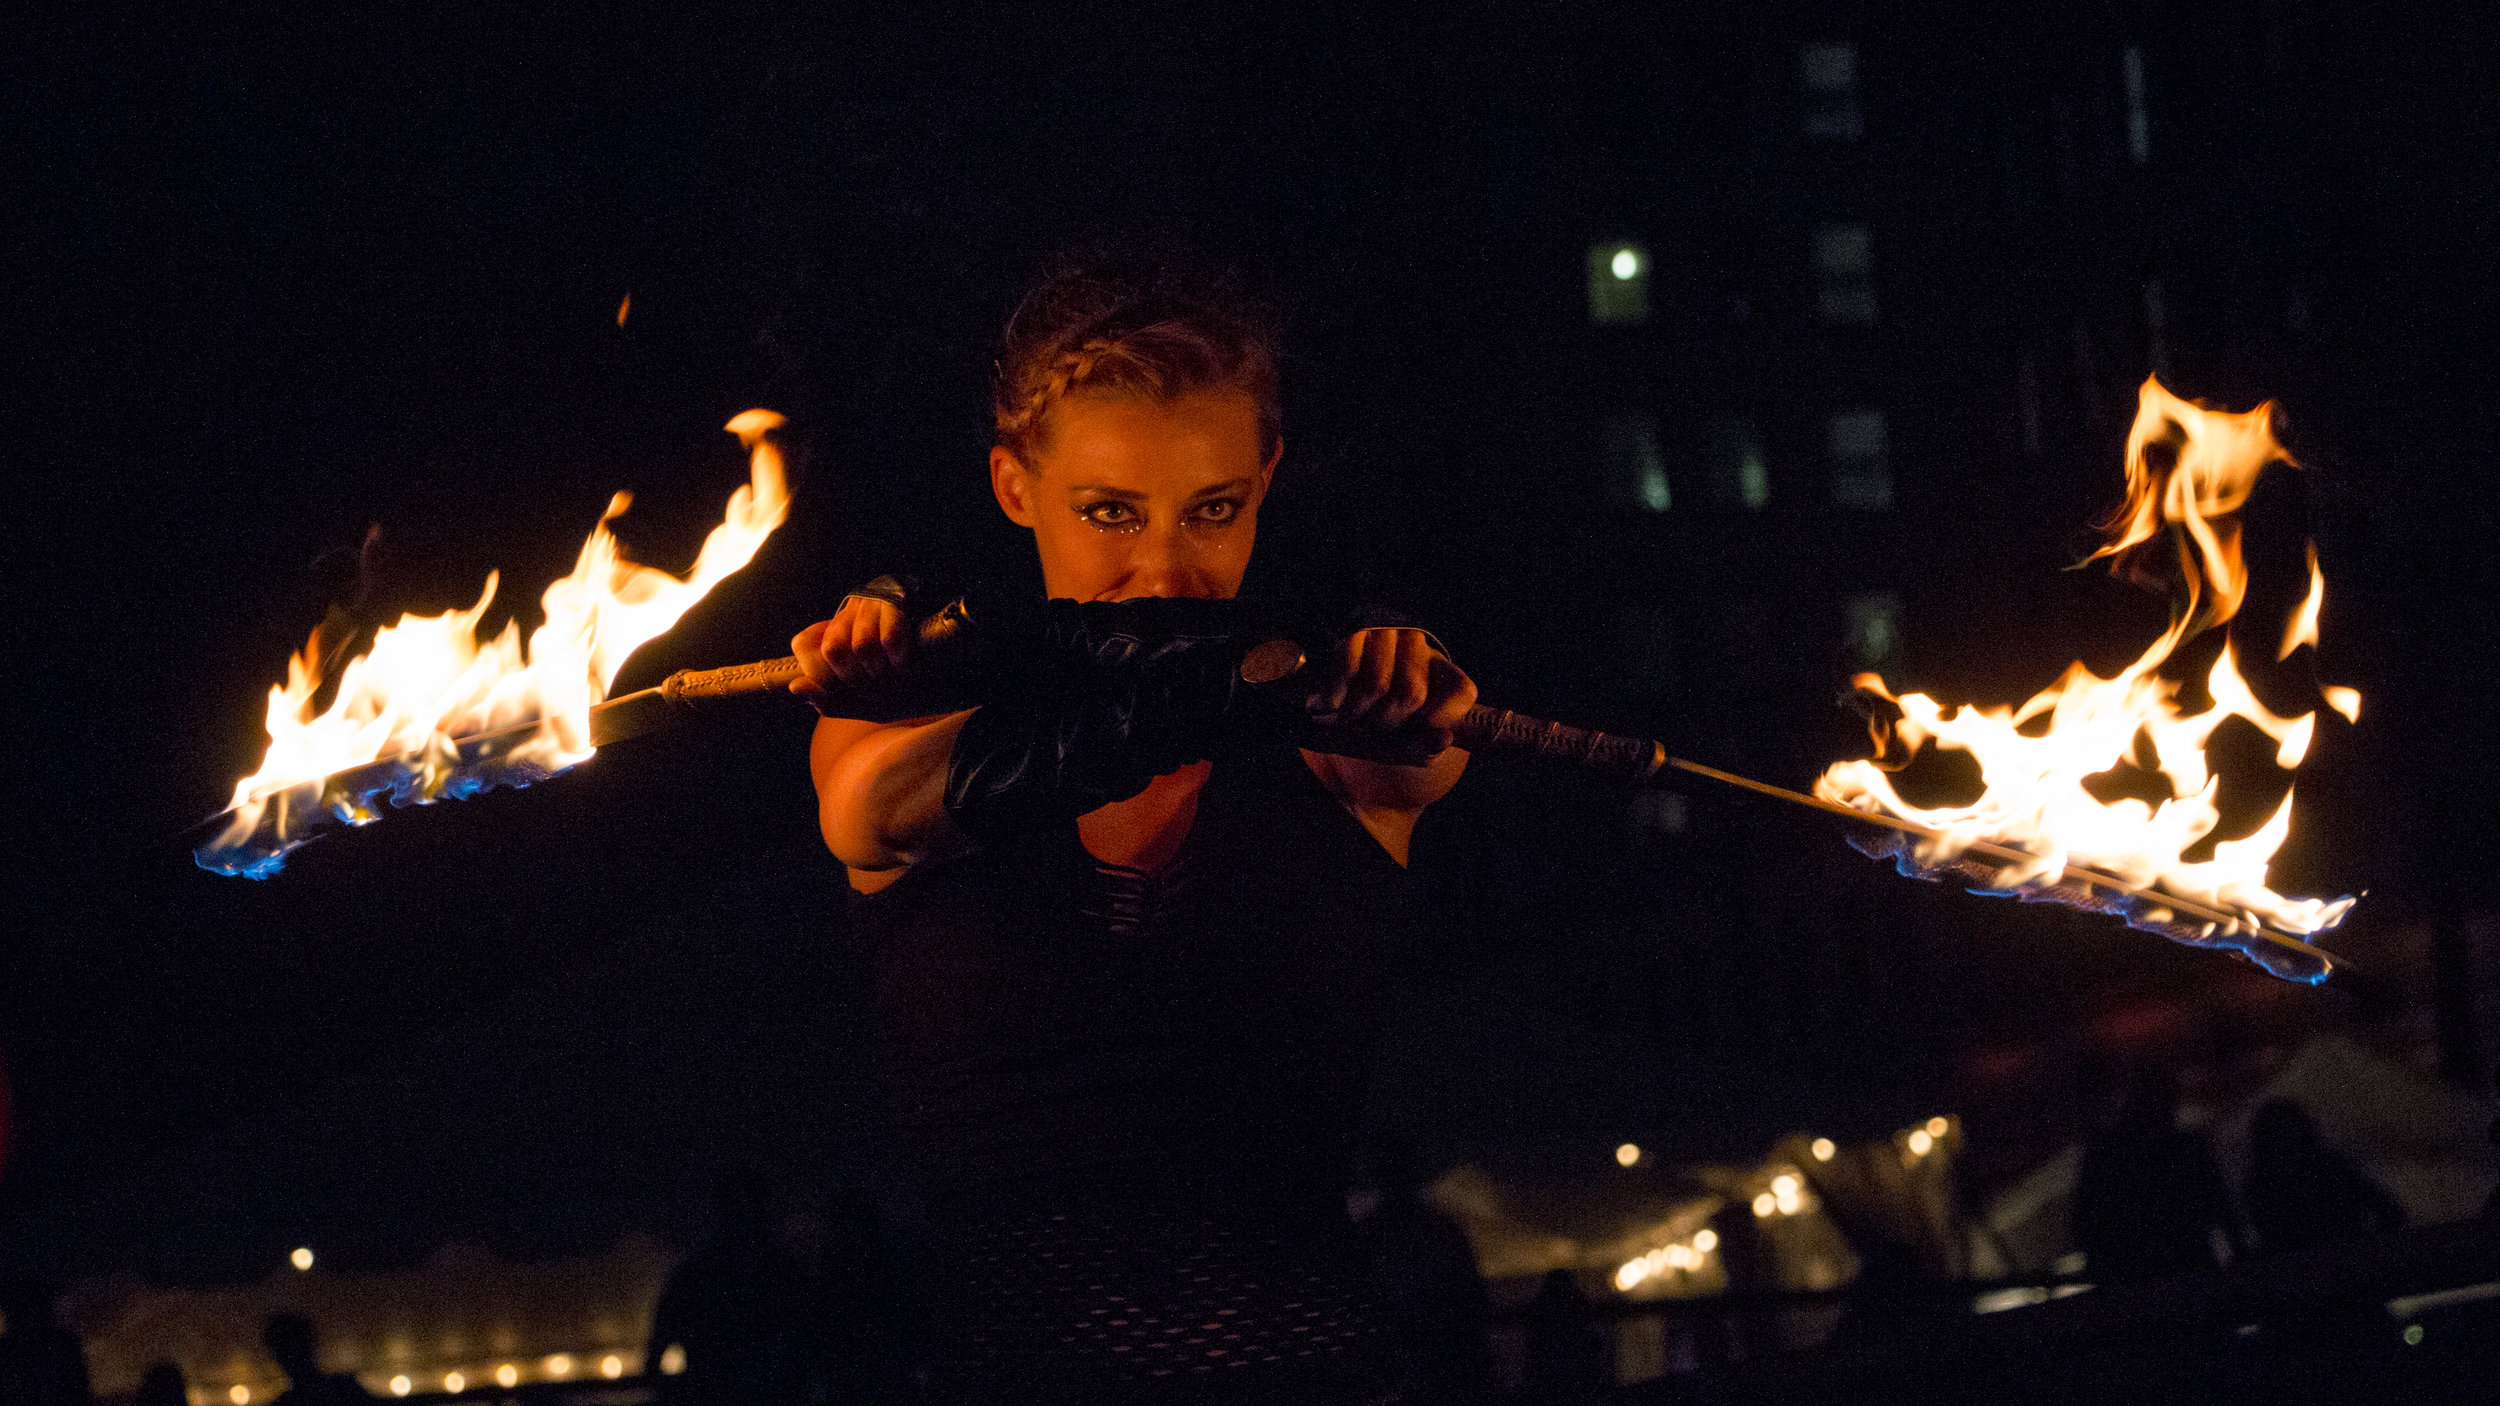 Fire Performers - Book our most badass flow artists! Fire spectacles dress up outdoor evening events, fantasy themes, masquerades, carnivals, fire and ice galas, and more.Photo courtesy of Drew Christhilf